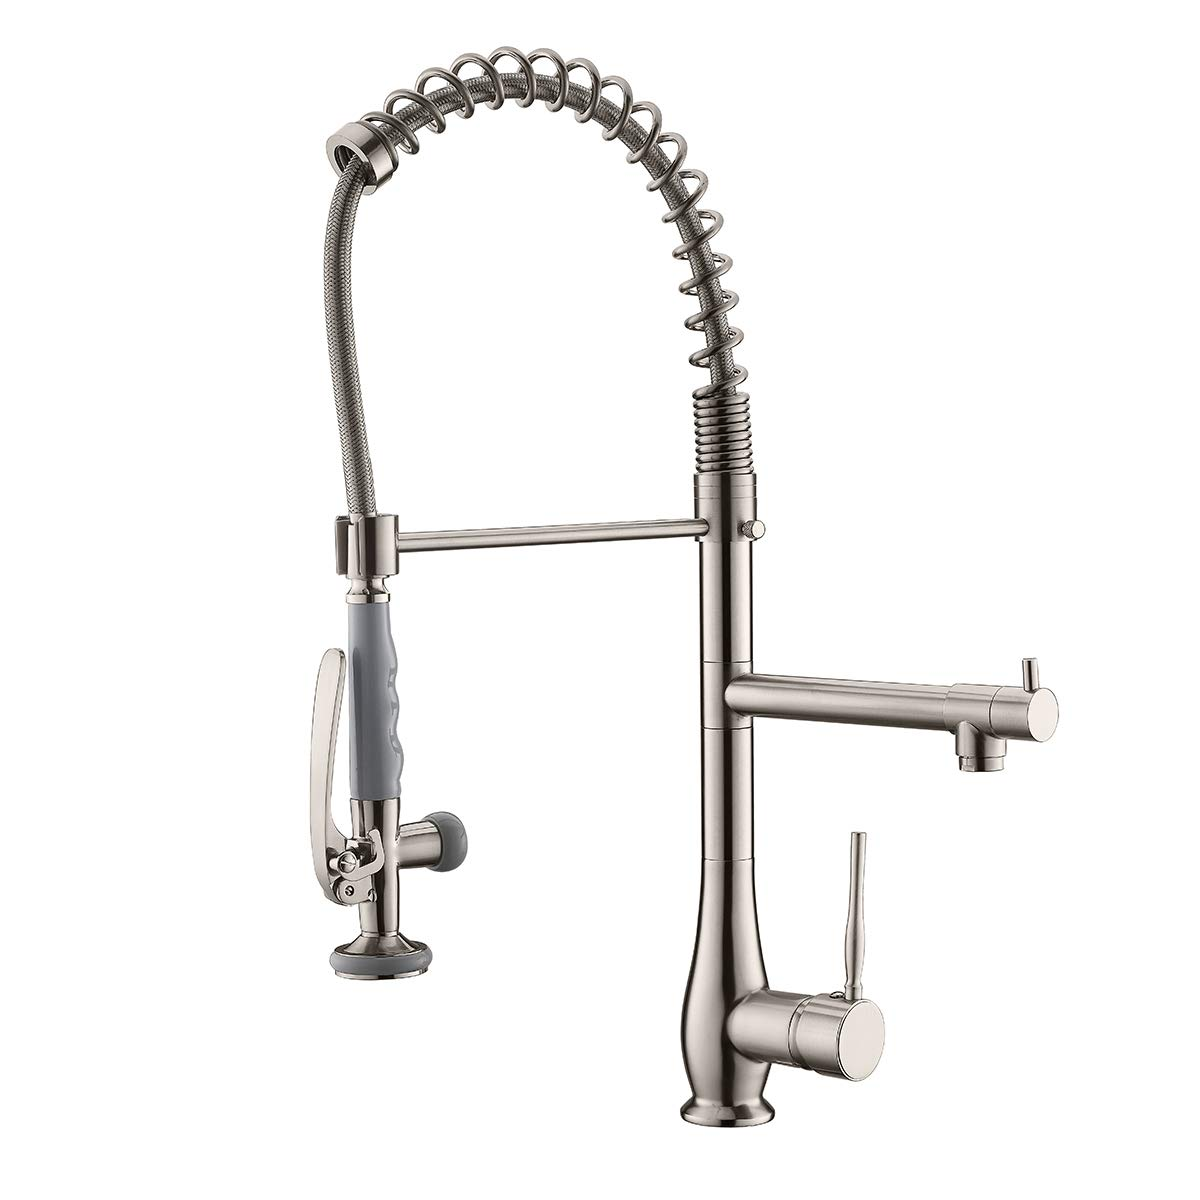 Gimili Commercial Kitchen Faucets with Pull Down Sprayer Stainless Steel Single Handle Swivel Two Head Kitchen Sink Faucet Brushed Nickel